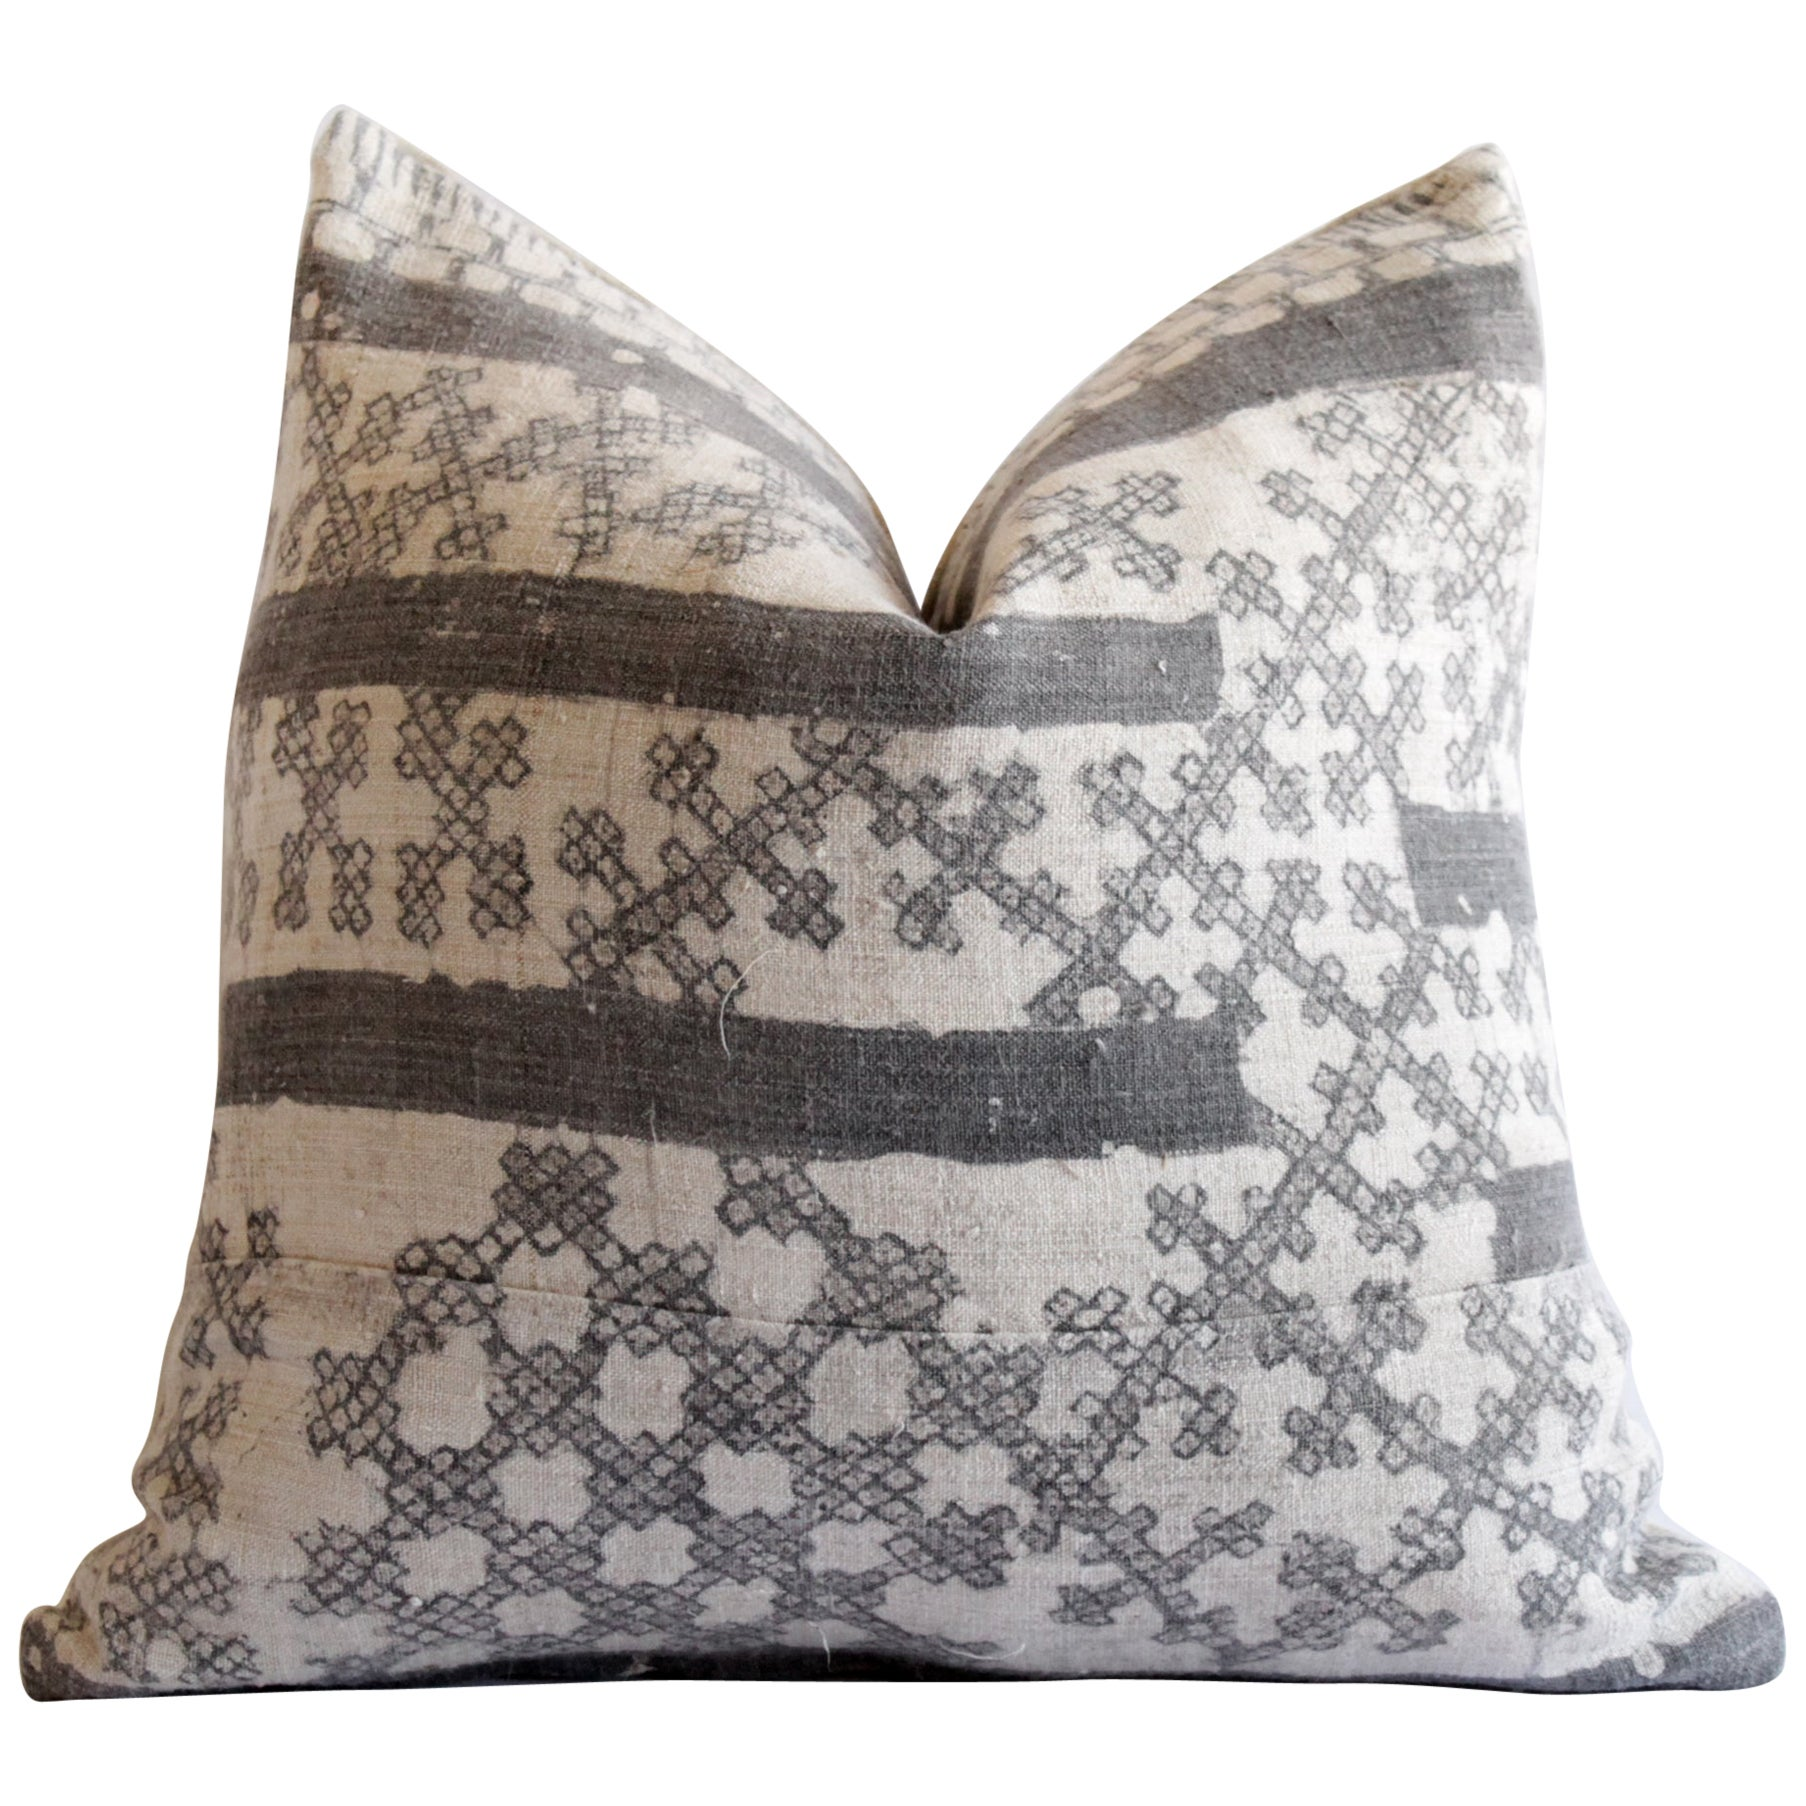 Vintage Batik Accent Pillow Charcoal and Natural Linen